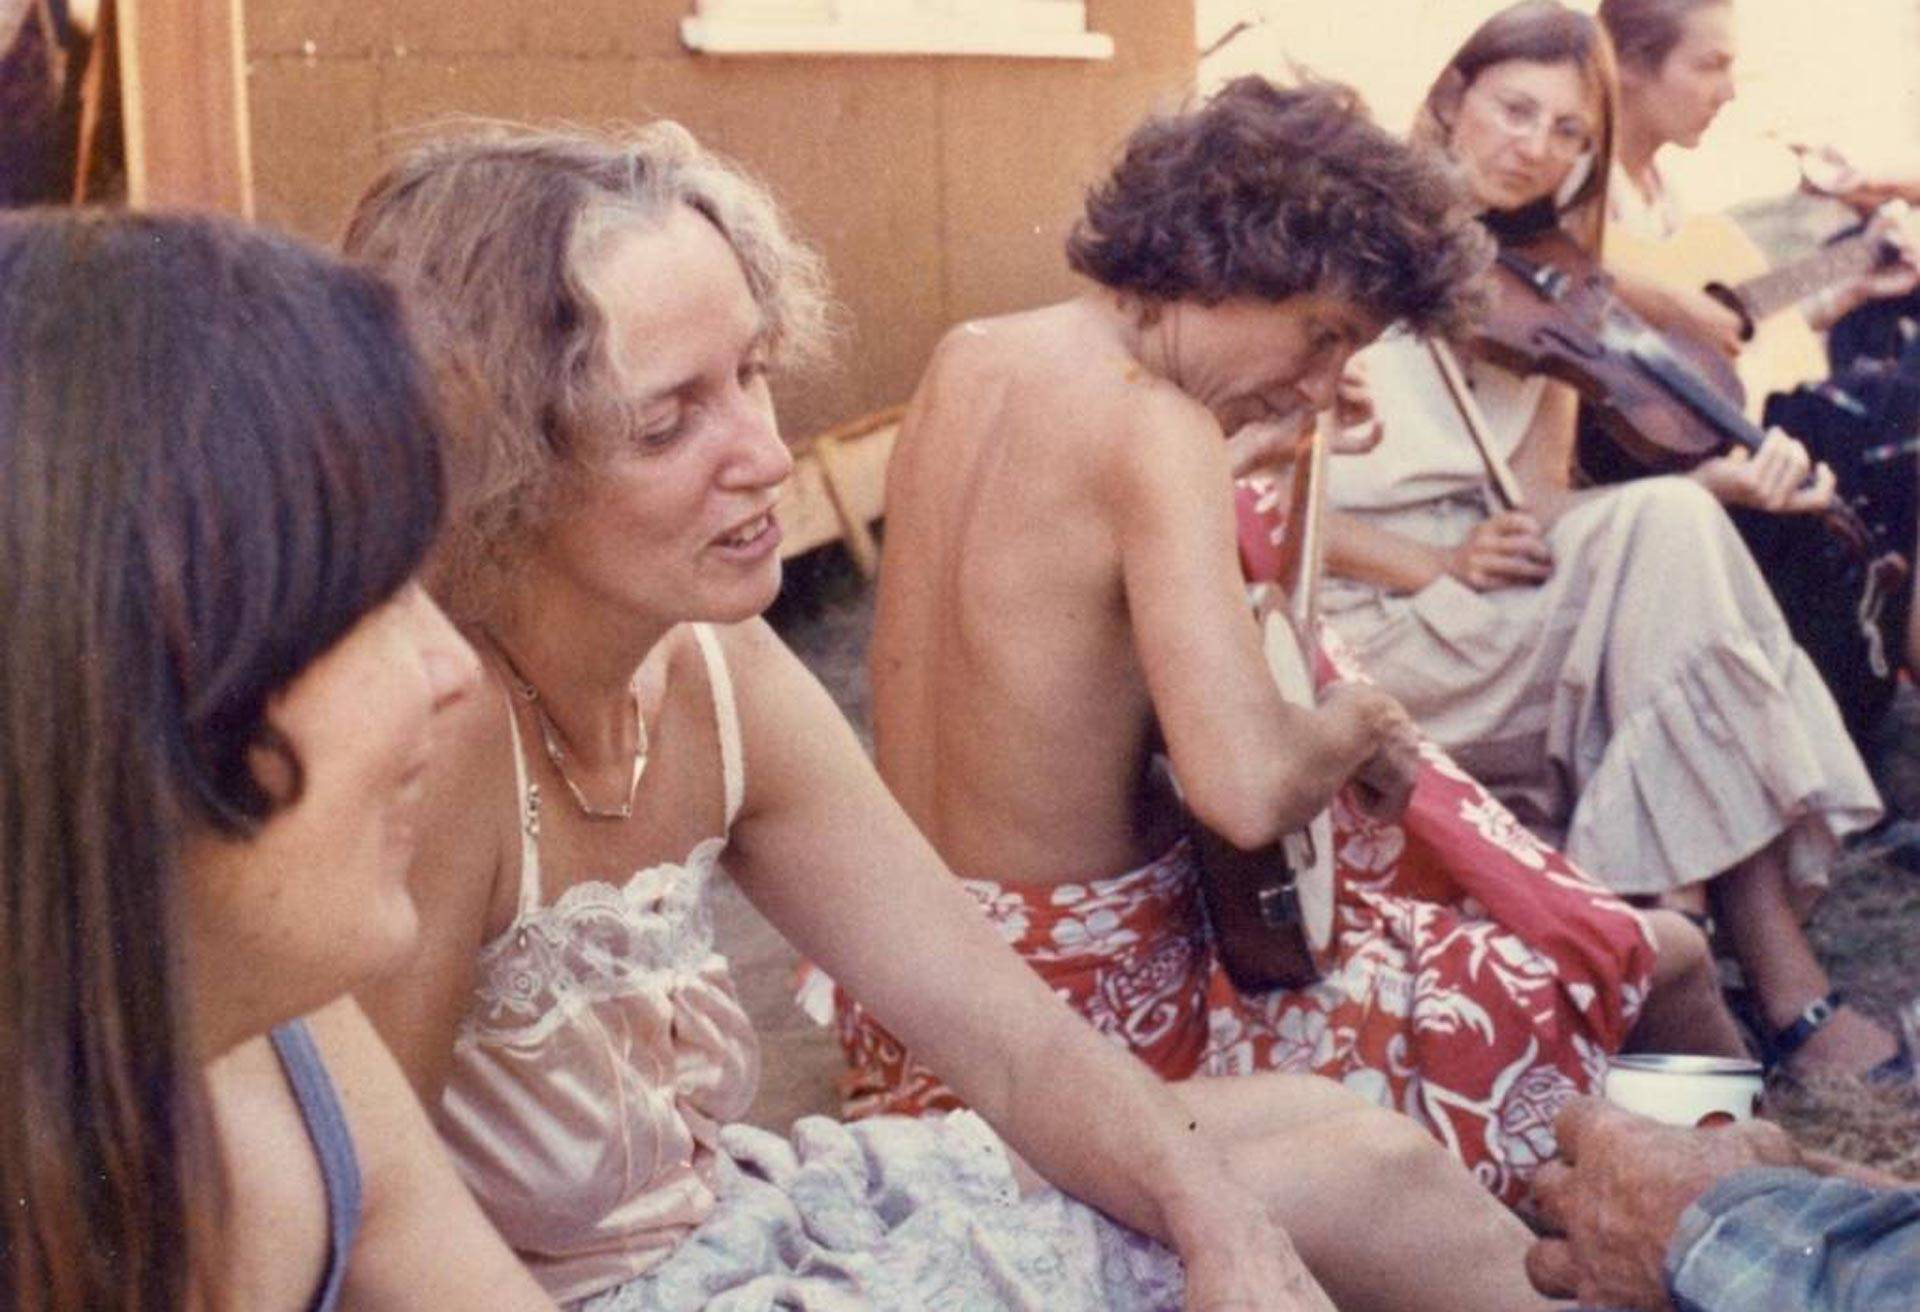 Salli Rasberry and Delia Moon with others at a party. An upcoming panel at the Main San Francisco Library explores the unsung contributions of women during the 1960s counterculture. Courtesy Salli Rasberry